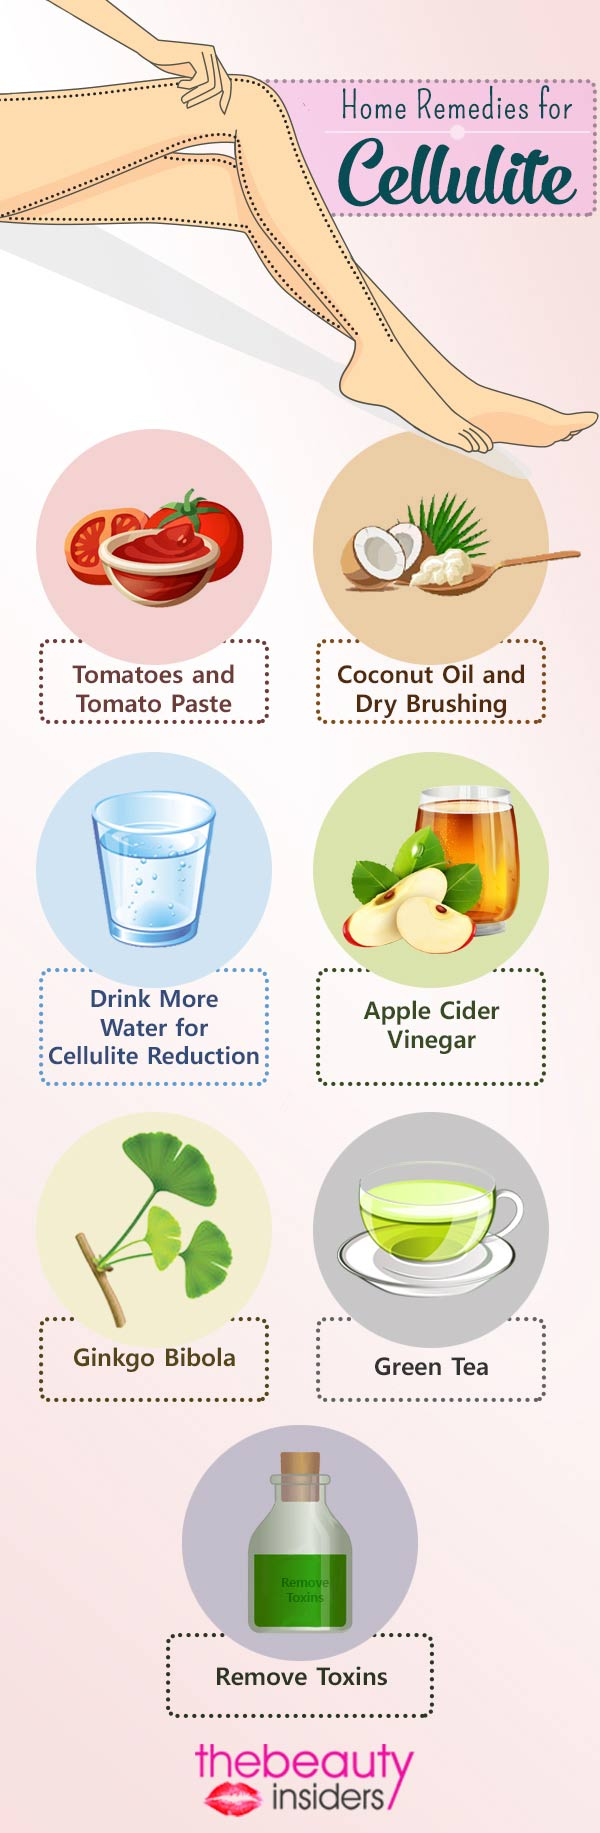 Home Remedies for Cellulite